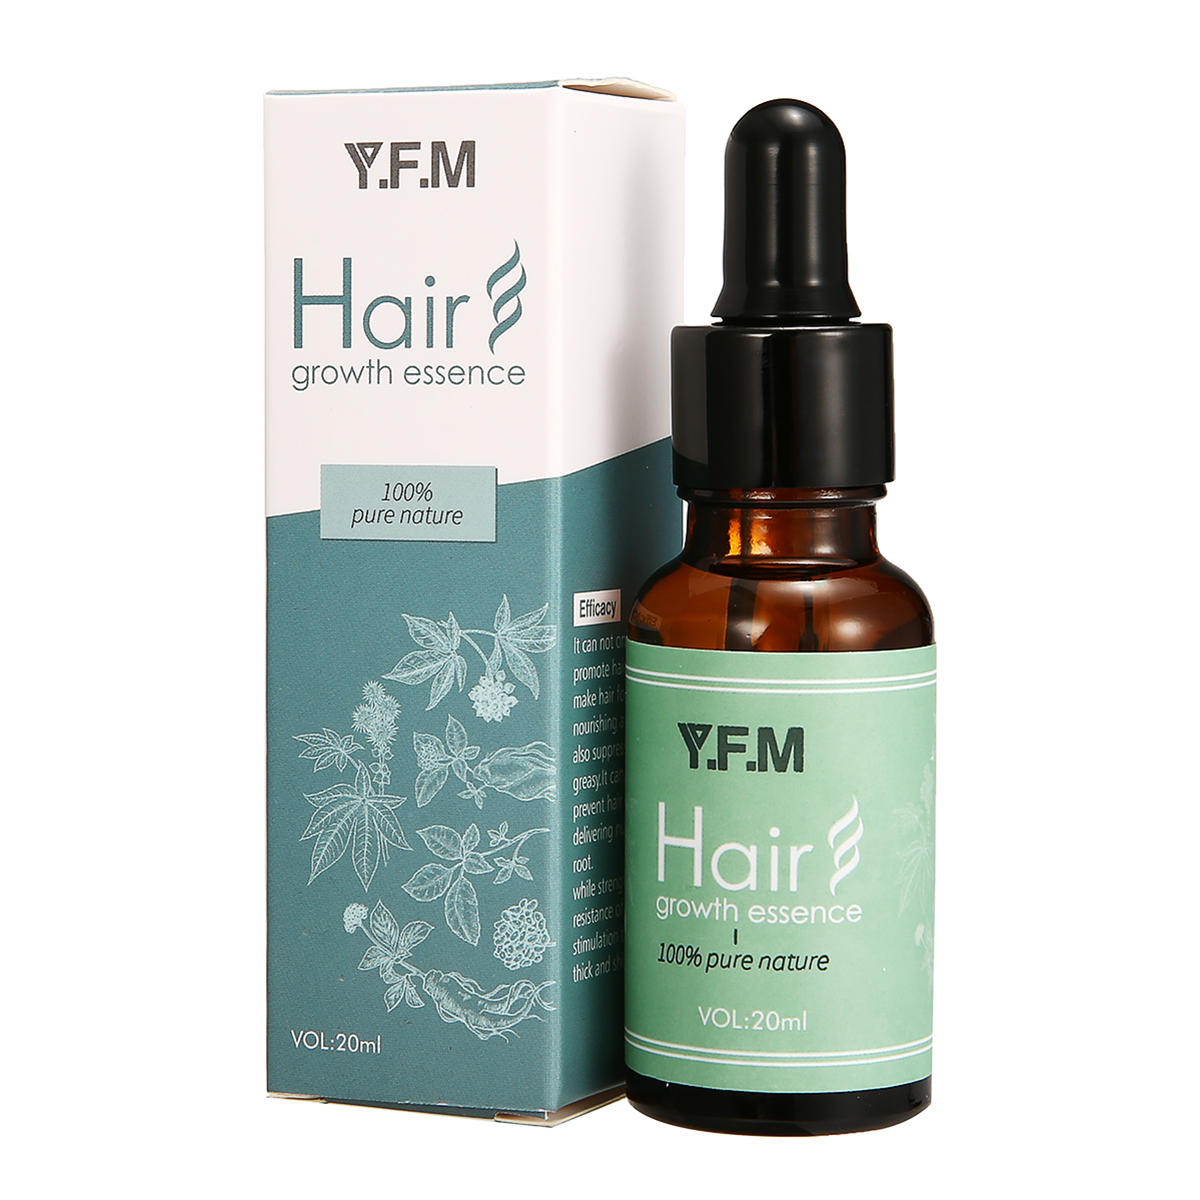 Y.F.M@20ml Hair Growth Essence Prevent Hair Loss Promote Hair Growth Essence Hair Scalp Treatments Serum